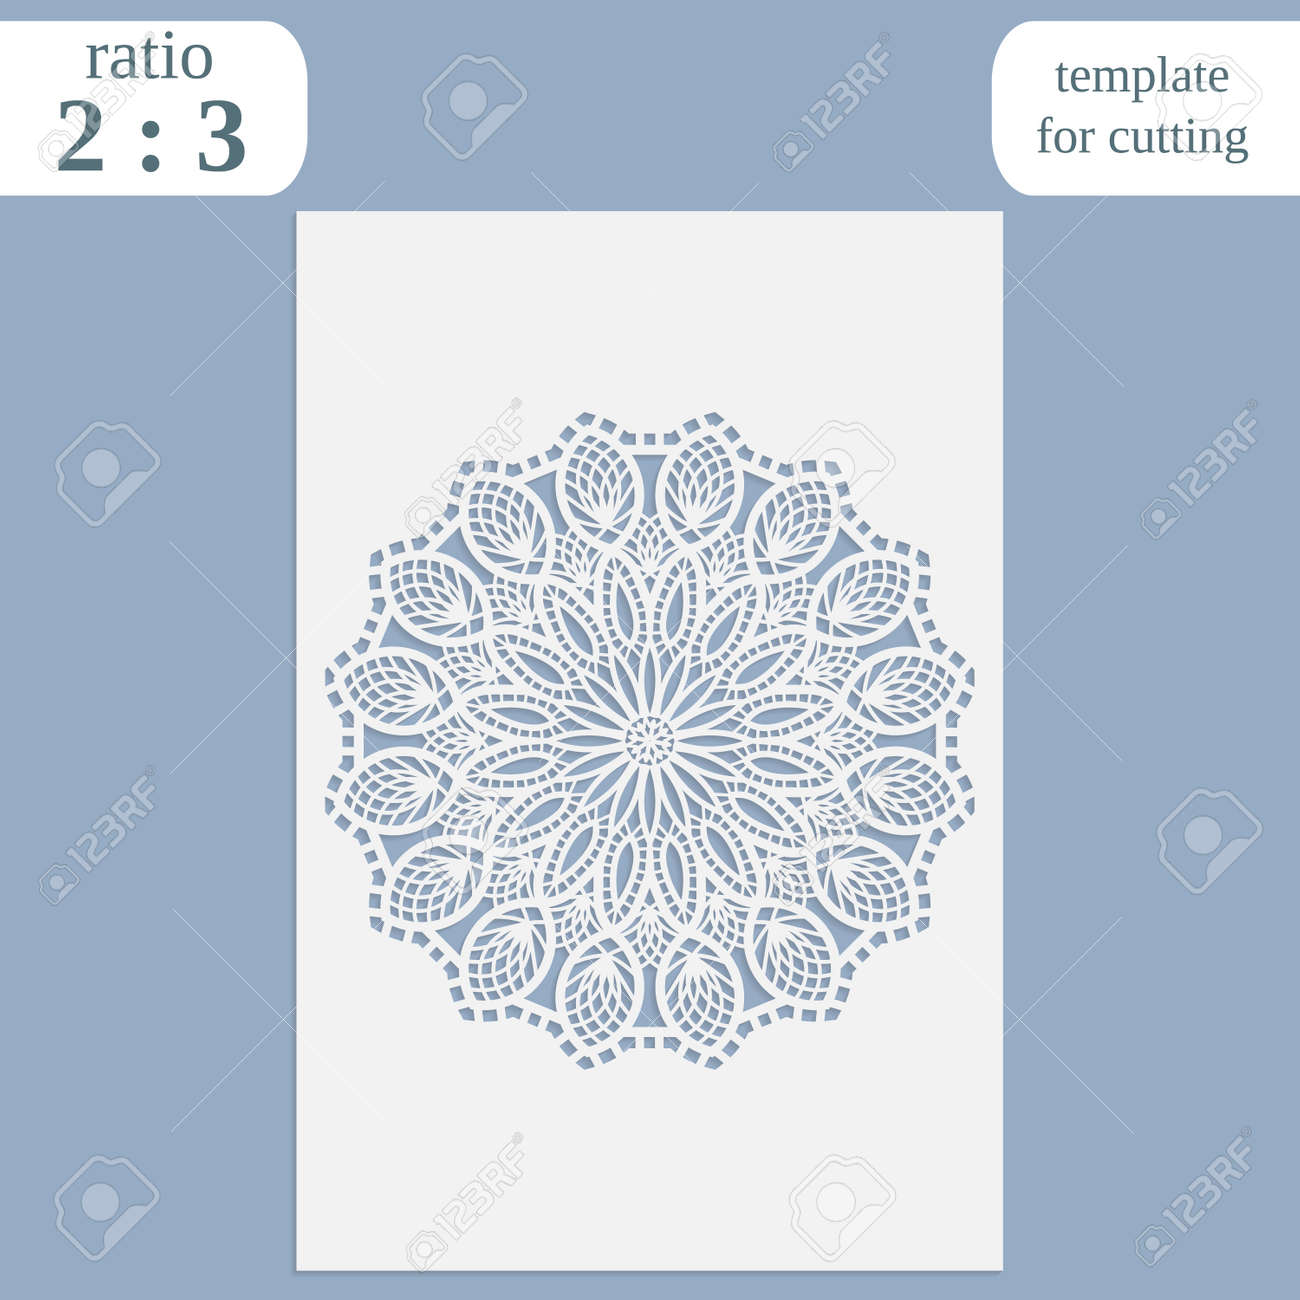 Paper openwork greeting card, template for cutting, lace invitation, lasercut metal panel, wood carving, laser cut plastic, vector illustration - 61935983